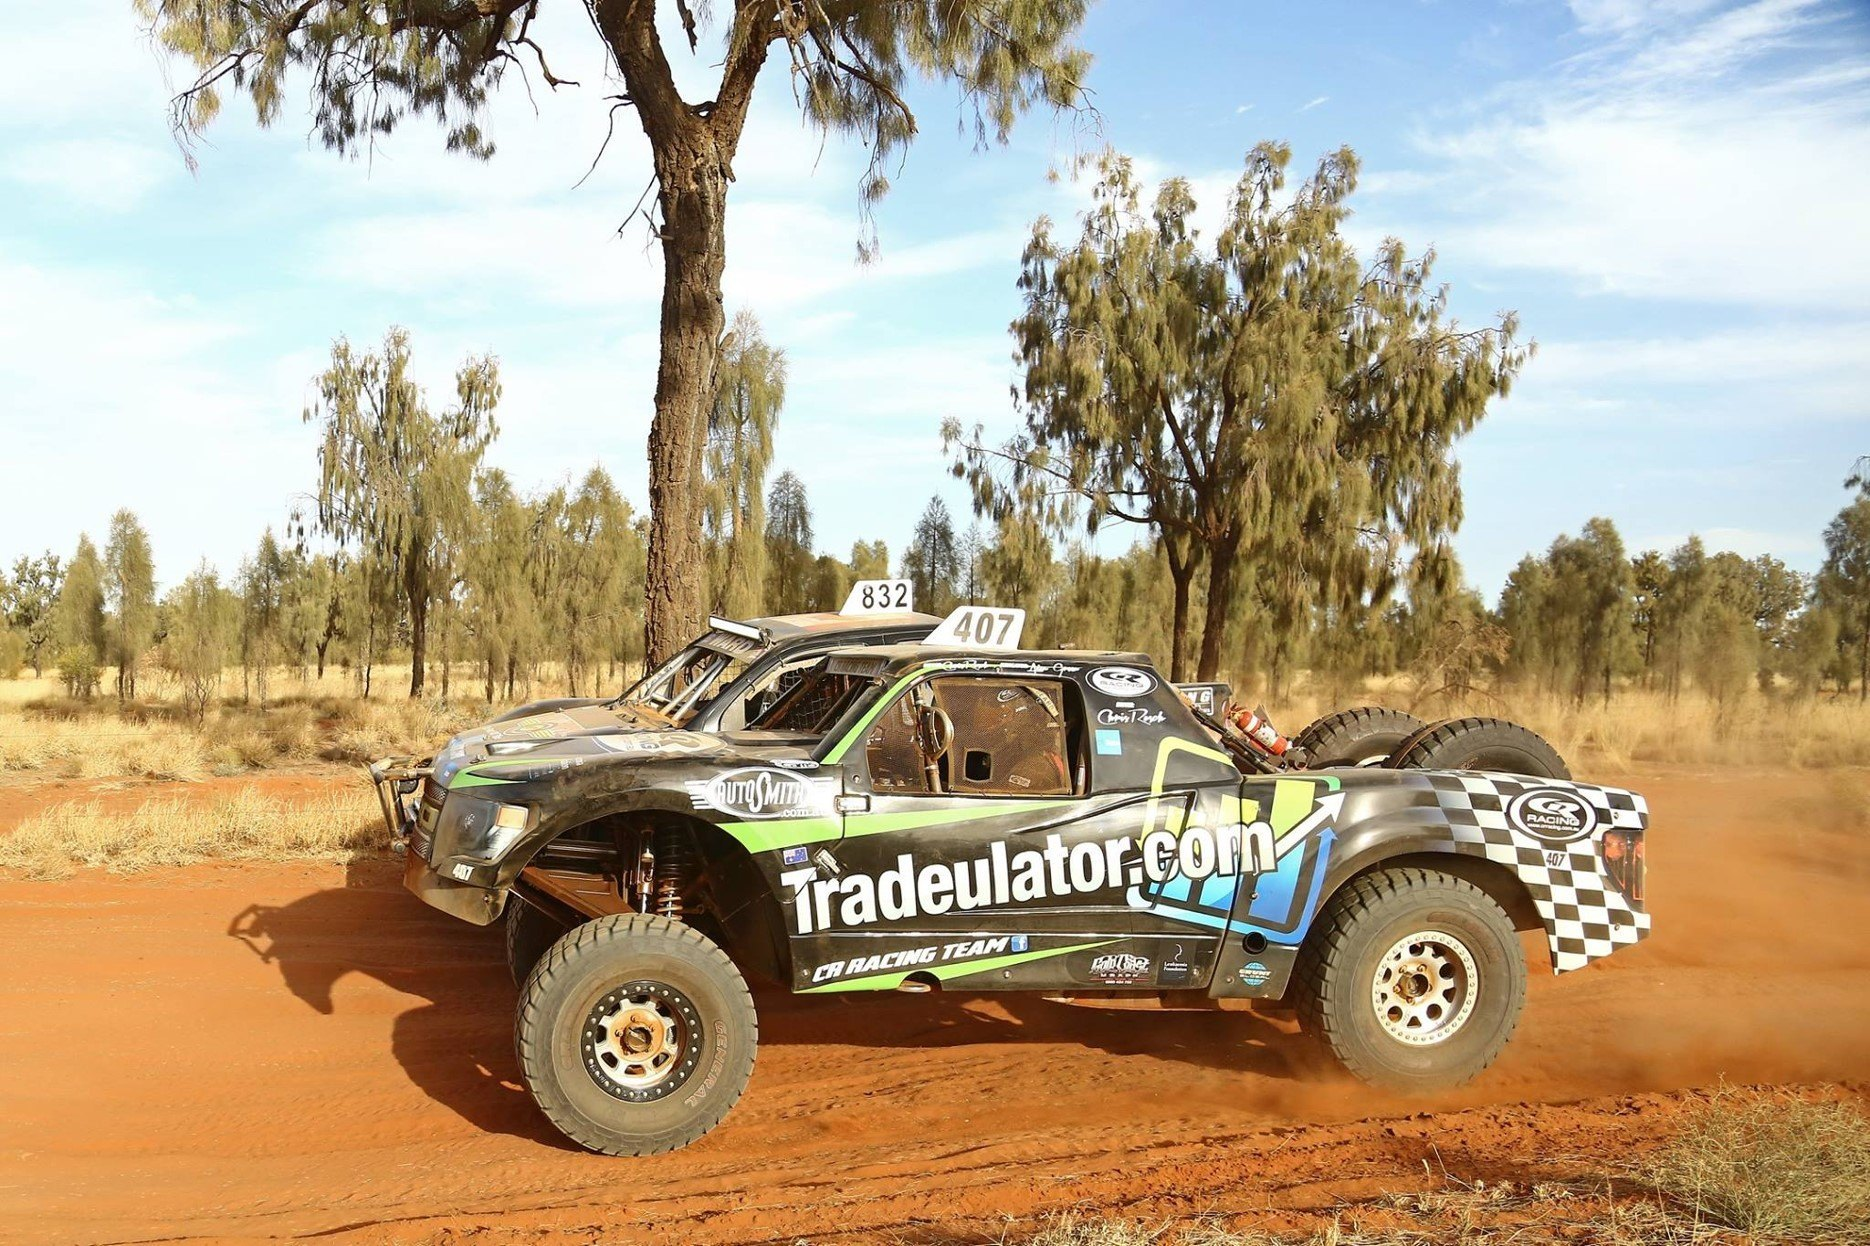 Tradeulator off road truck 2